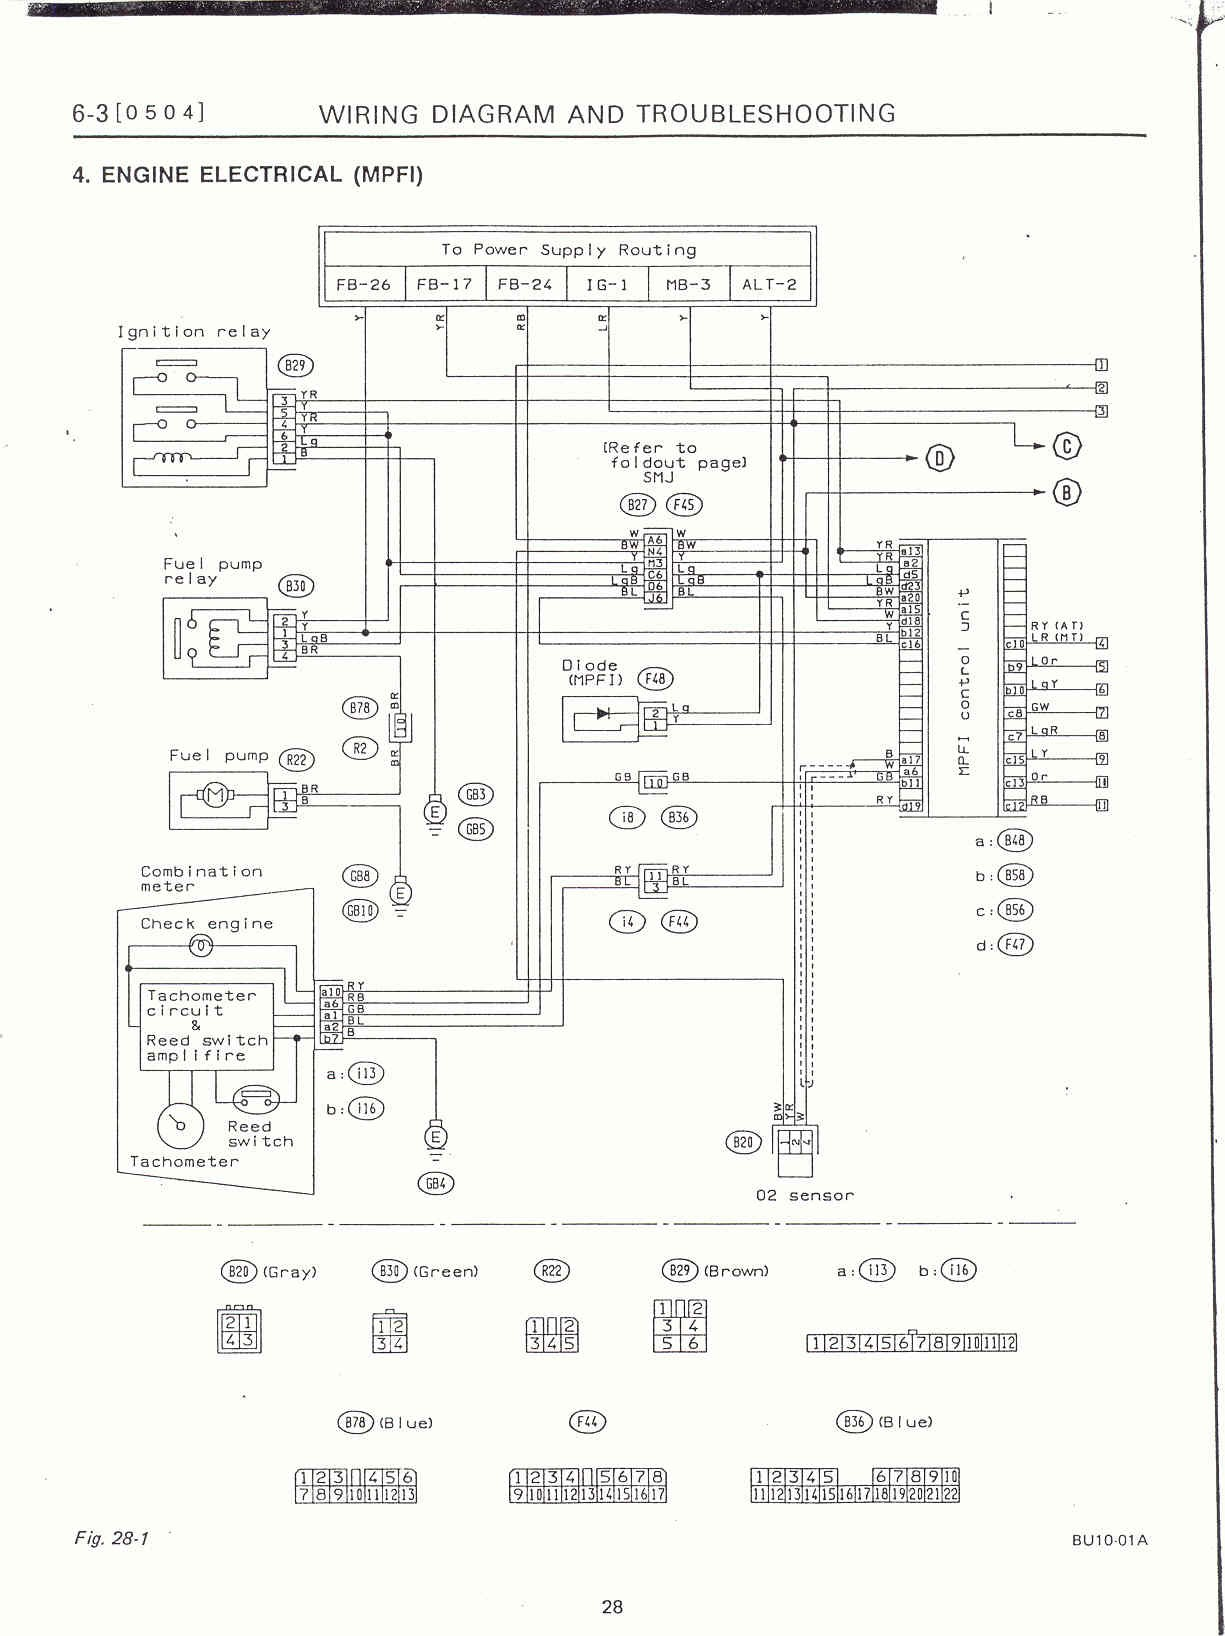 Ej205 Swap 2.5 Rs Wiring Diagram